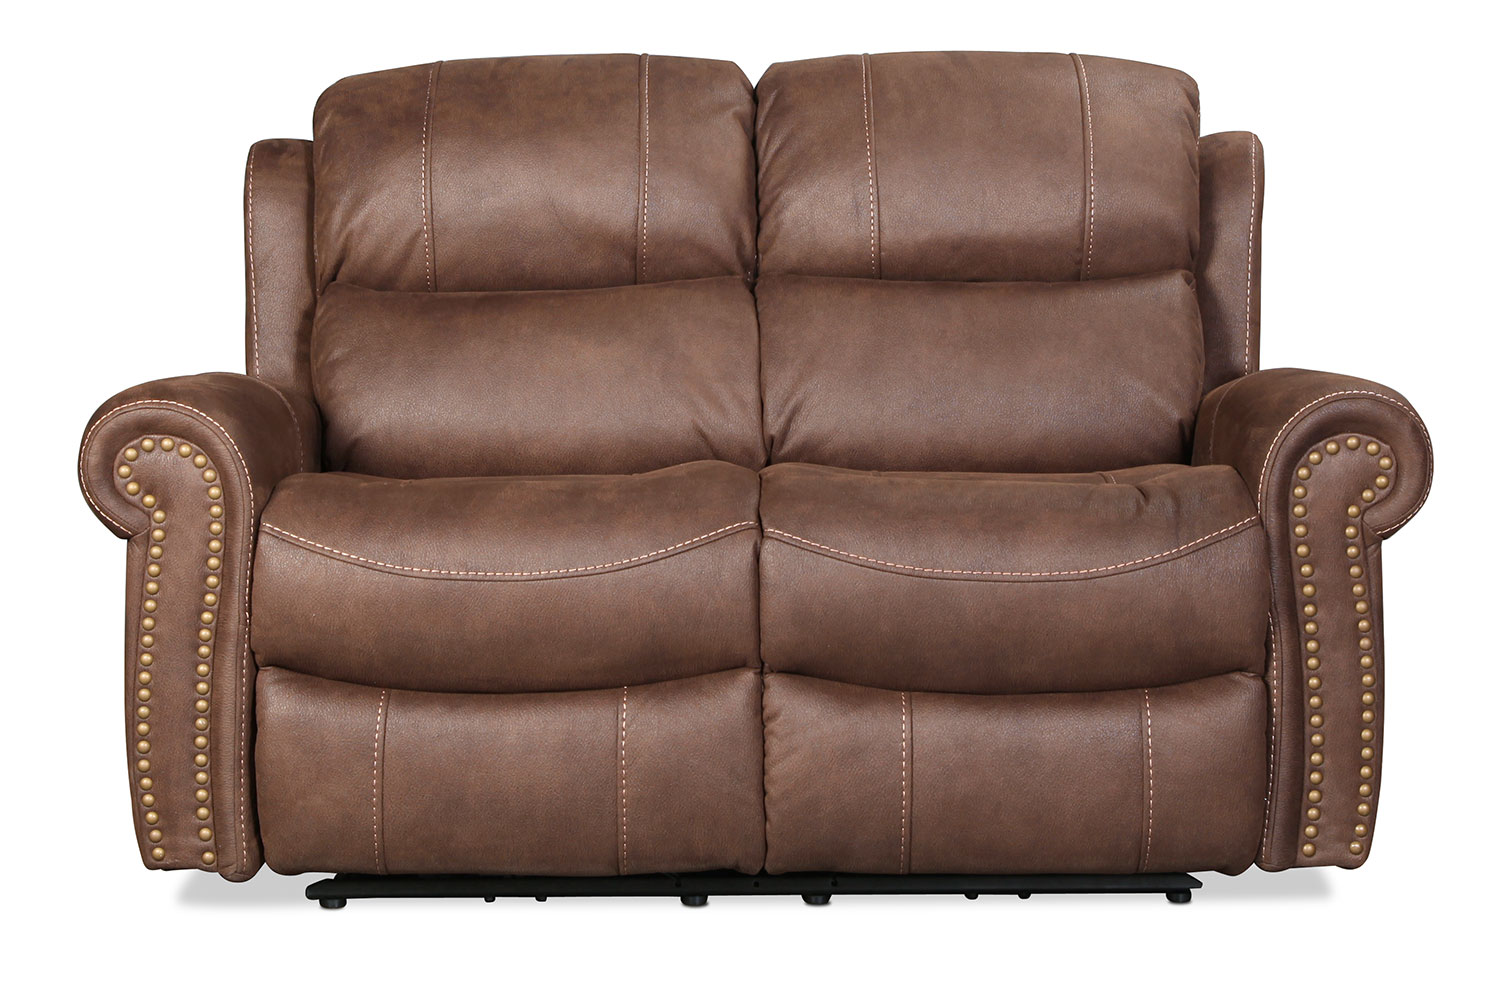 Legend Power Reclining Loveseat - Brown